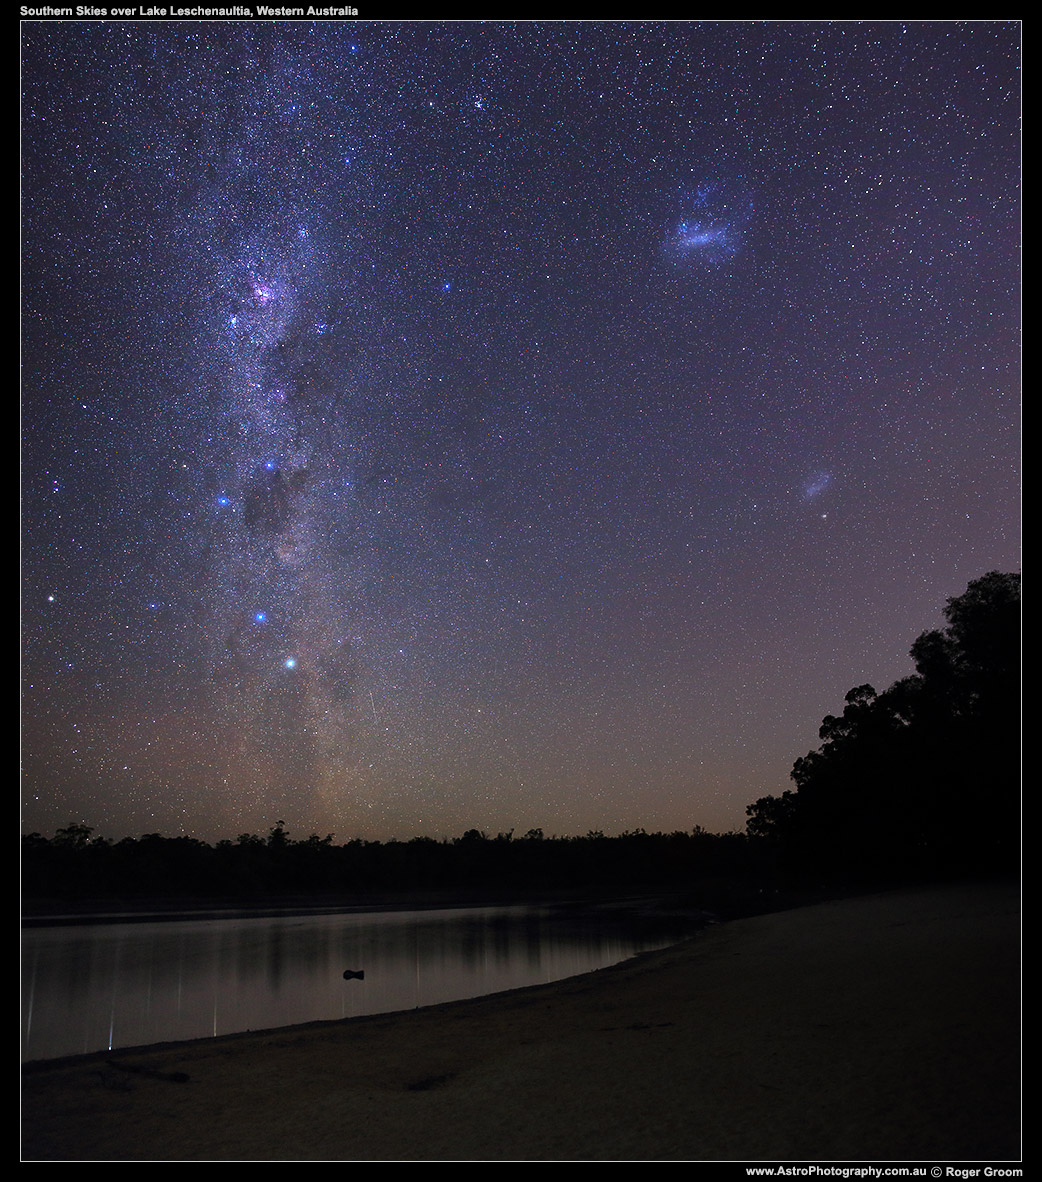 RG_IMG_201602_9262-Southern-Skies-at-Lake-Leschenaultia